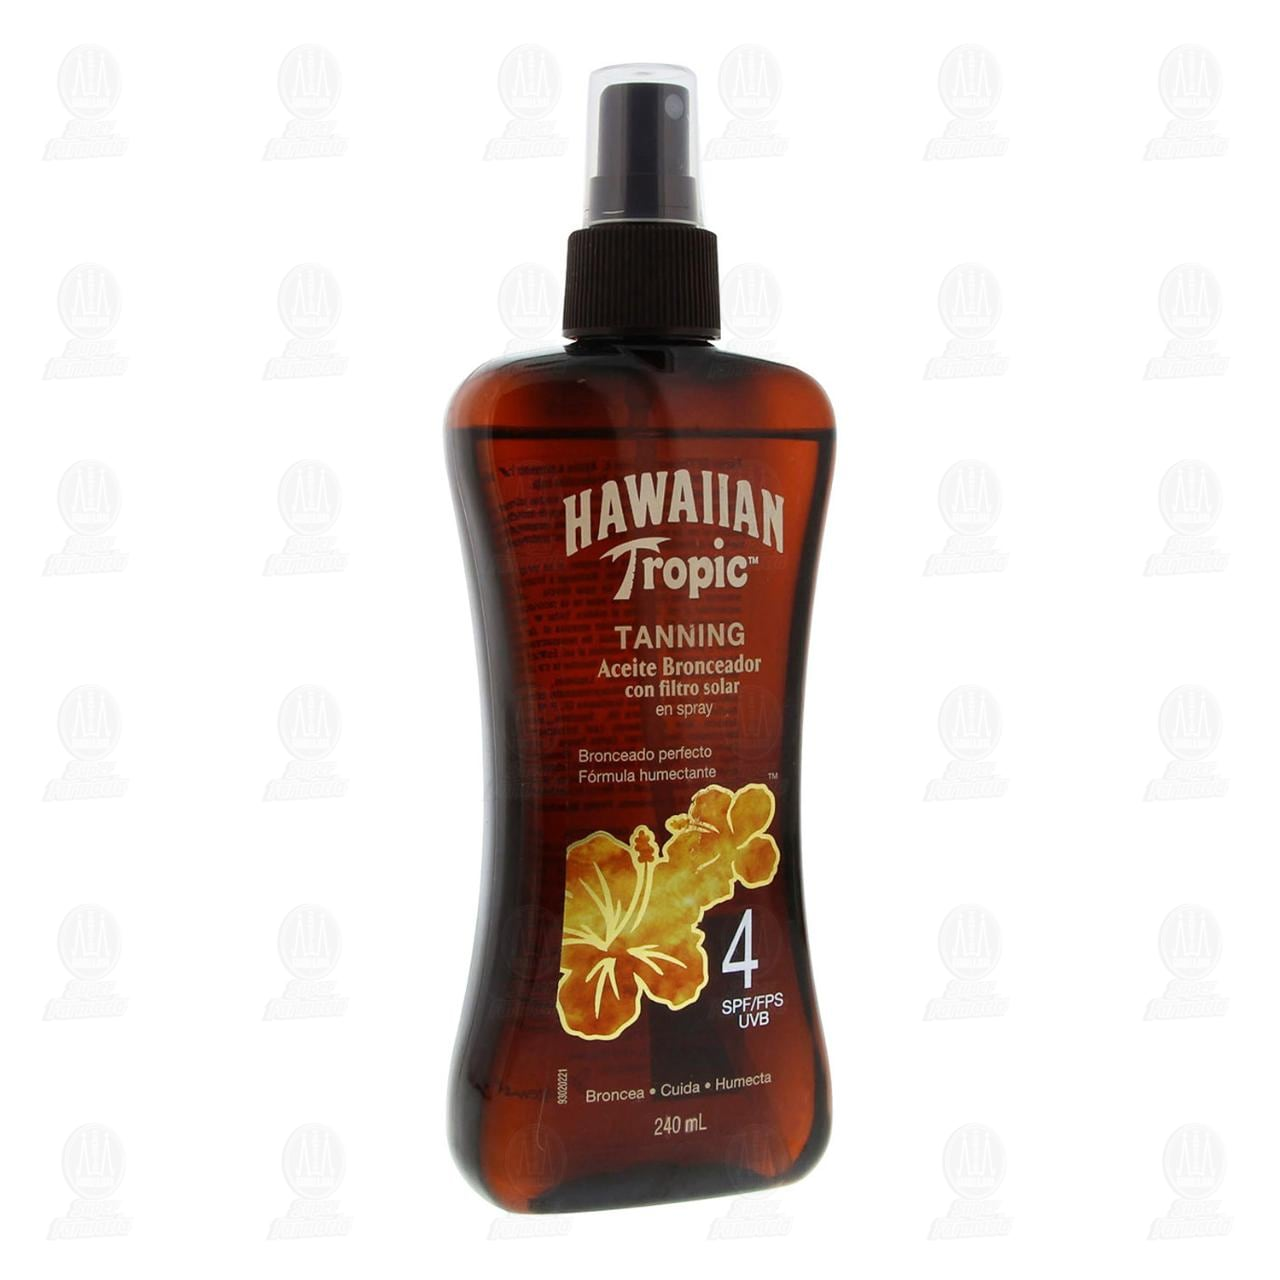 Aceite Bronceador Hawaiian Tropic con Filtro Solar en Spray FPS 4, 240 ml.